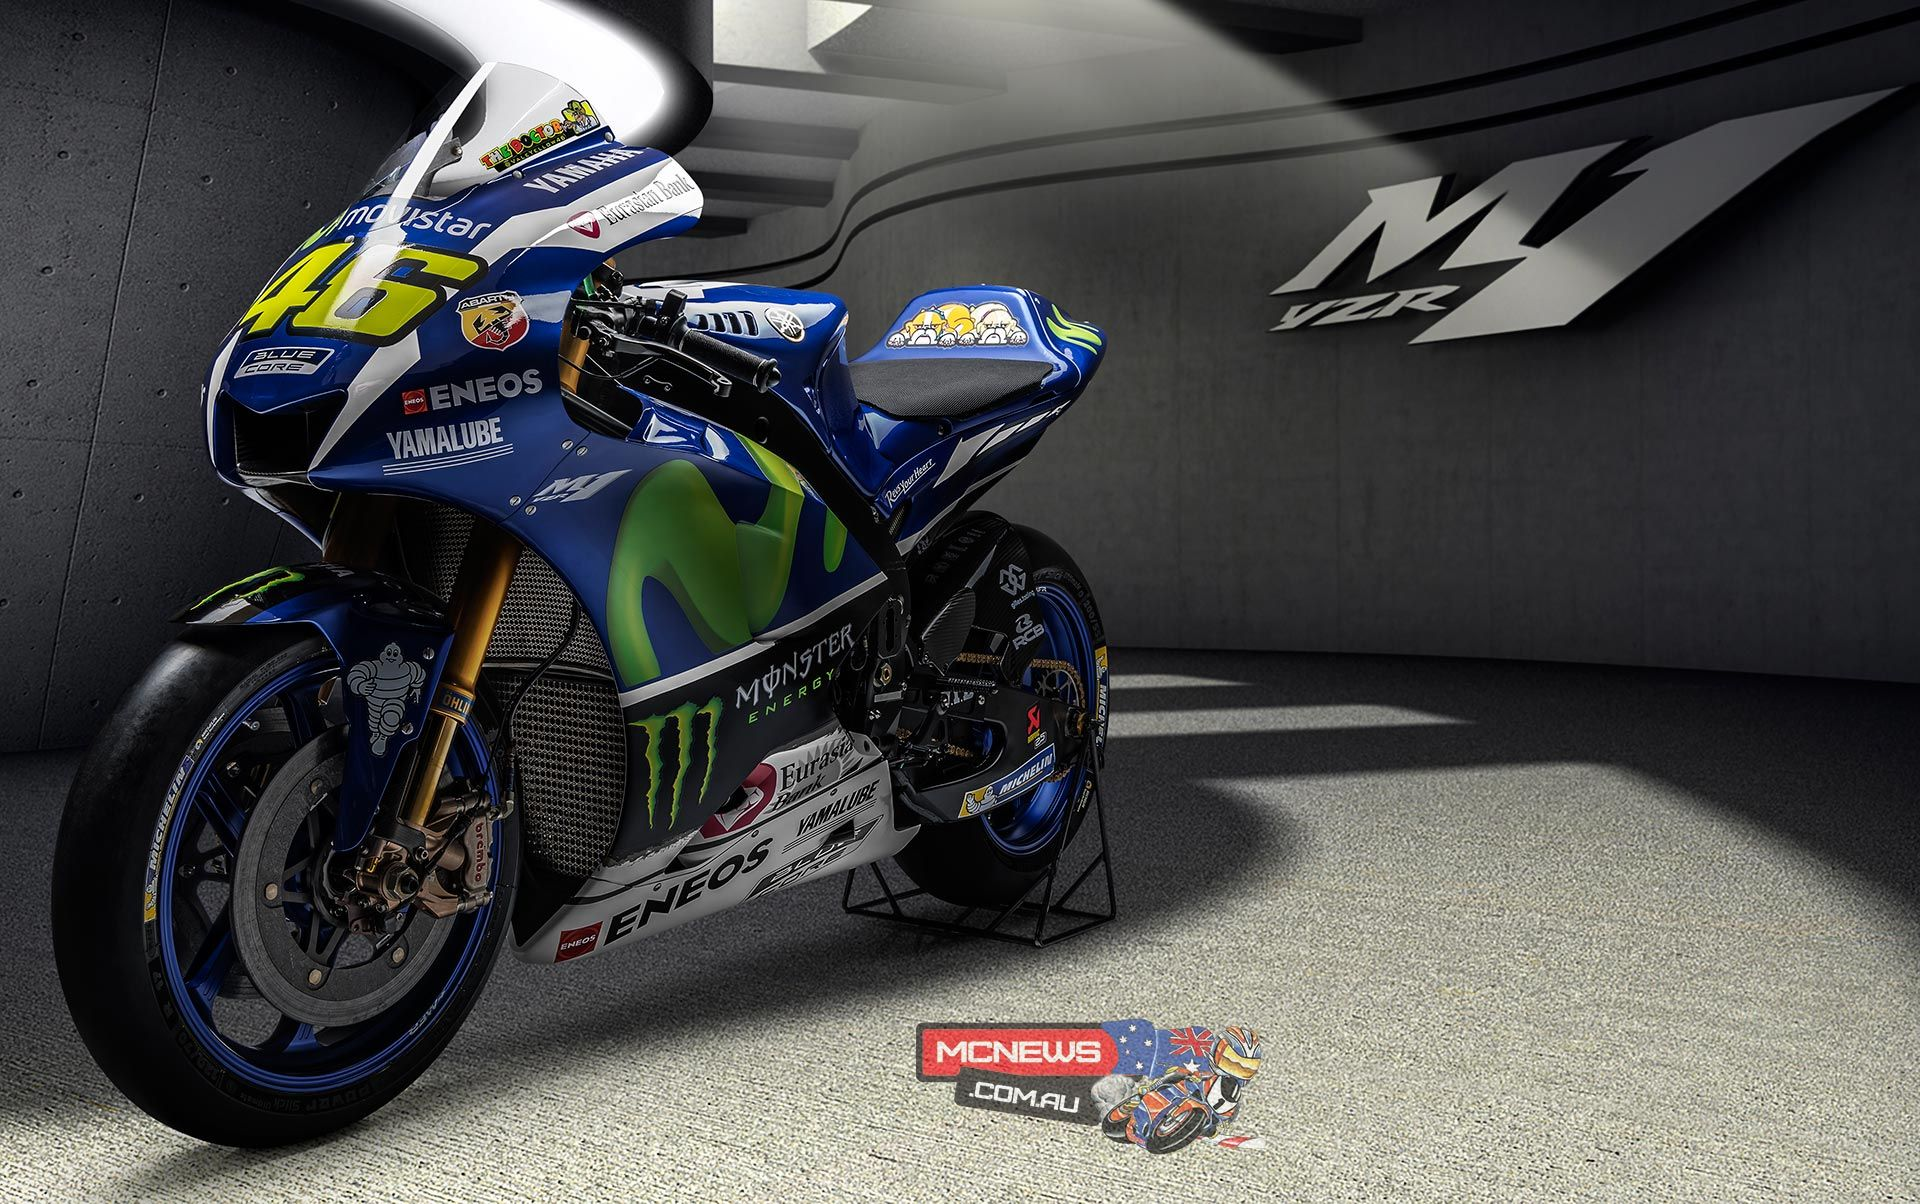 Free download Valentino Rossi 2016 MotoGP Livery MCNewscomau [1920x1204] for your Desktop, Mobile & Tablet